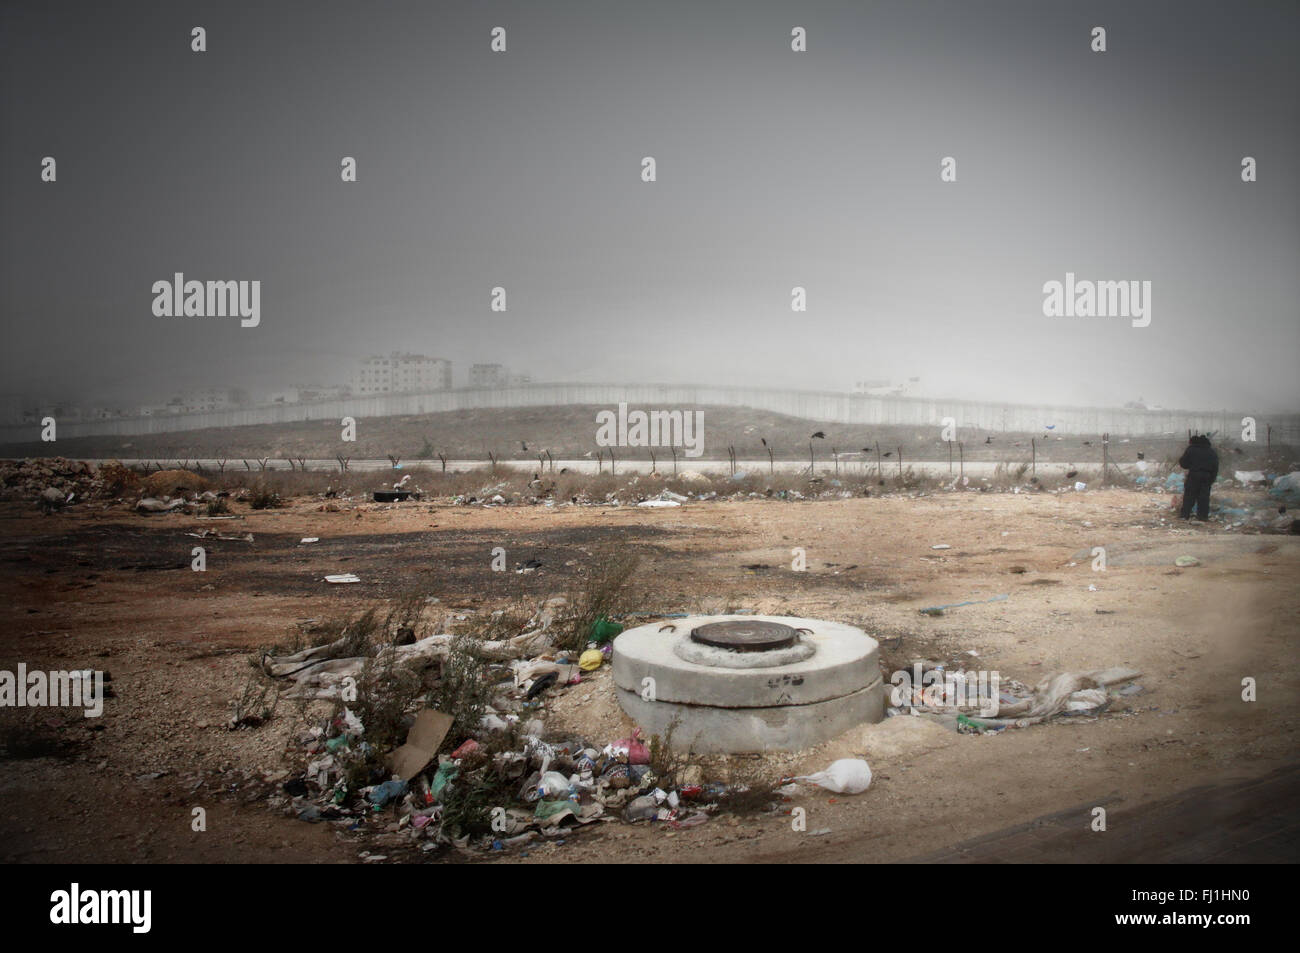 Separation wall near Qalandia checkpoint Jerusalem - Palestine - palestinian occupied territories - people and places - Stock Image